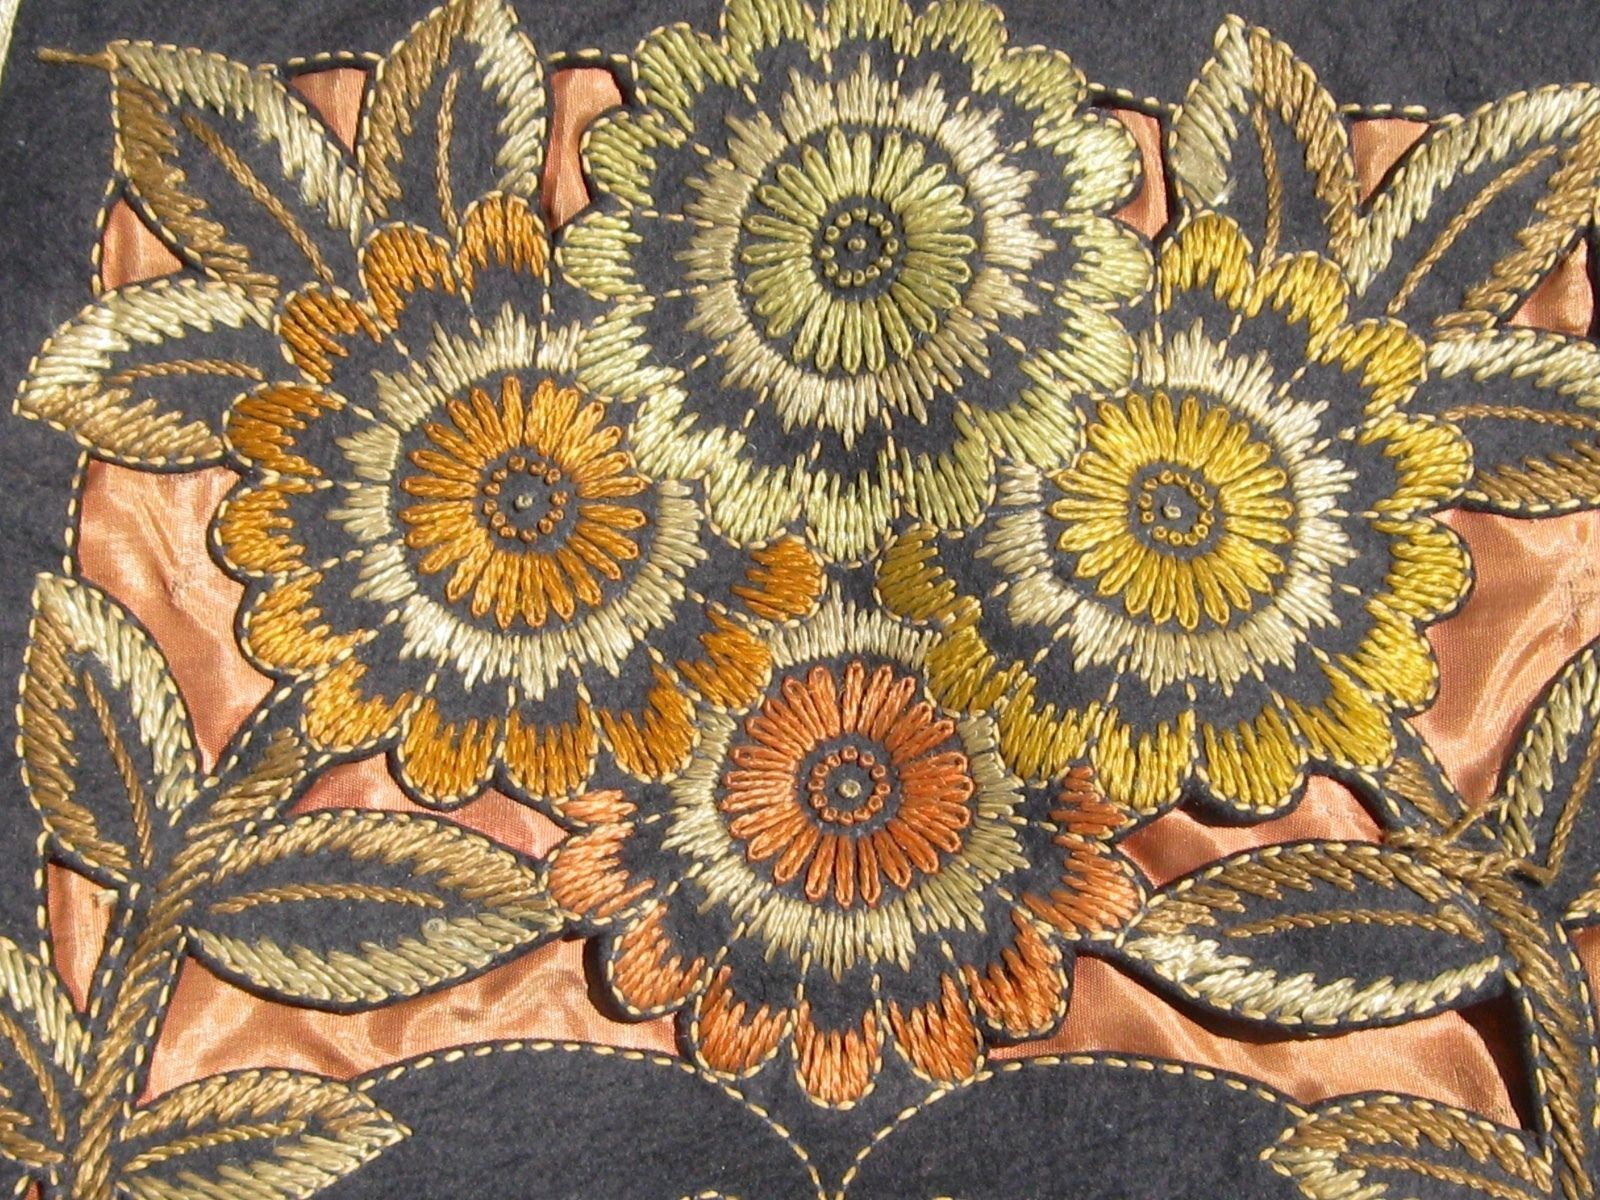 Art nouveau arts and crafts floral embroidered needlepoint felt